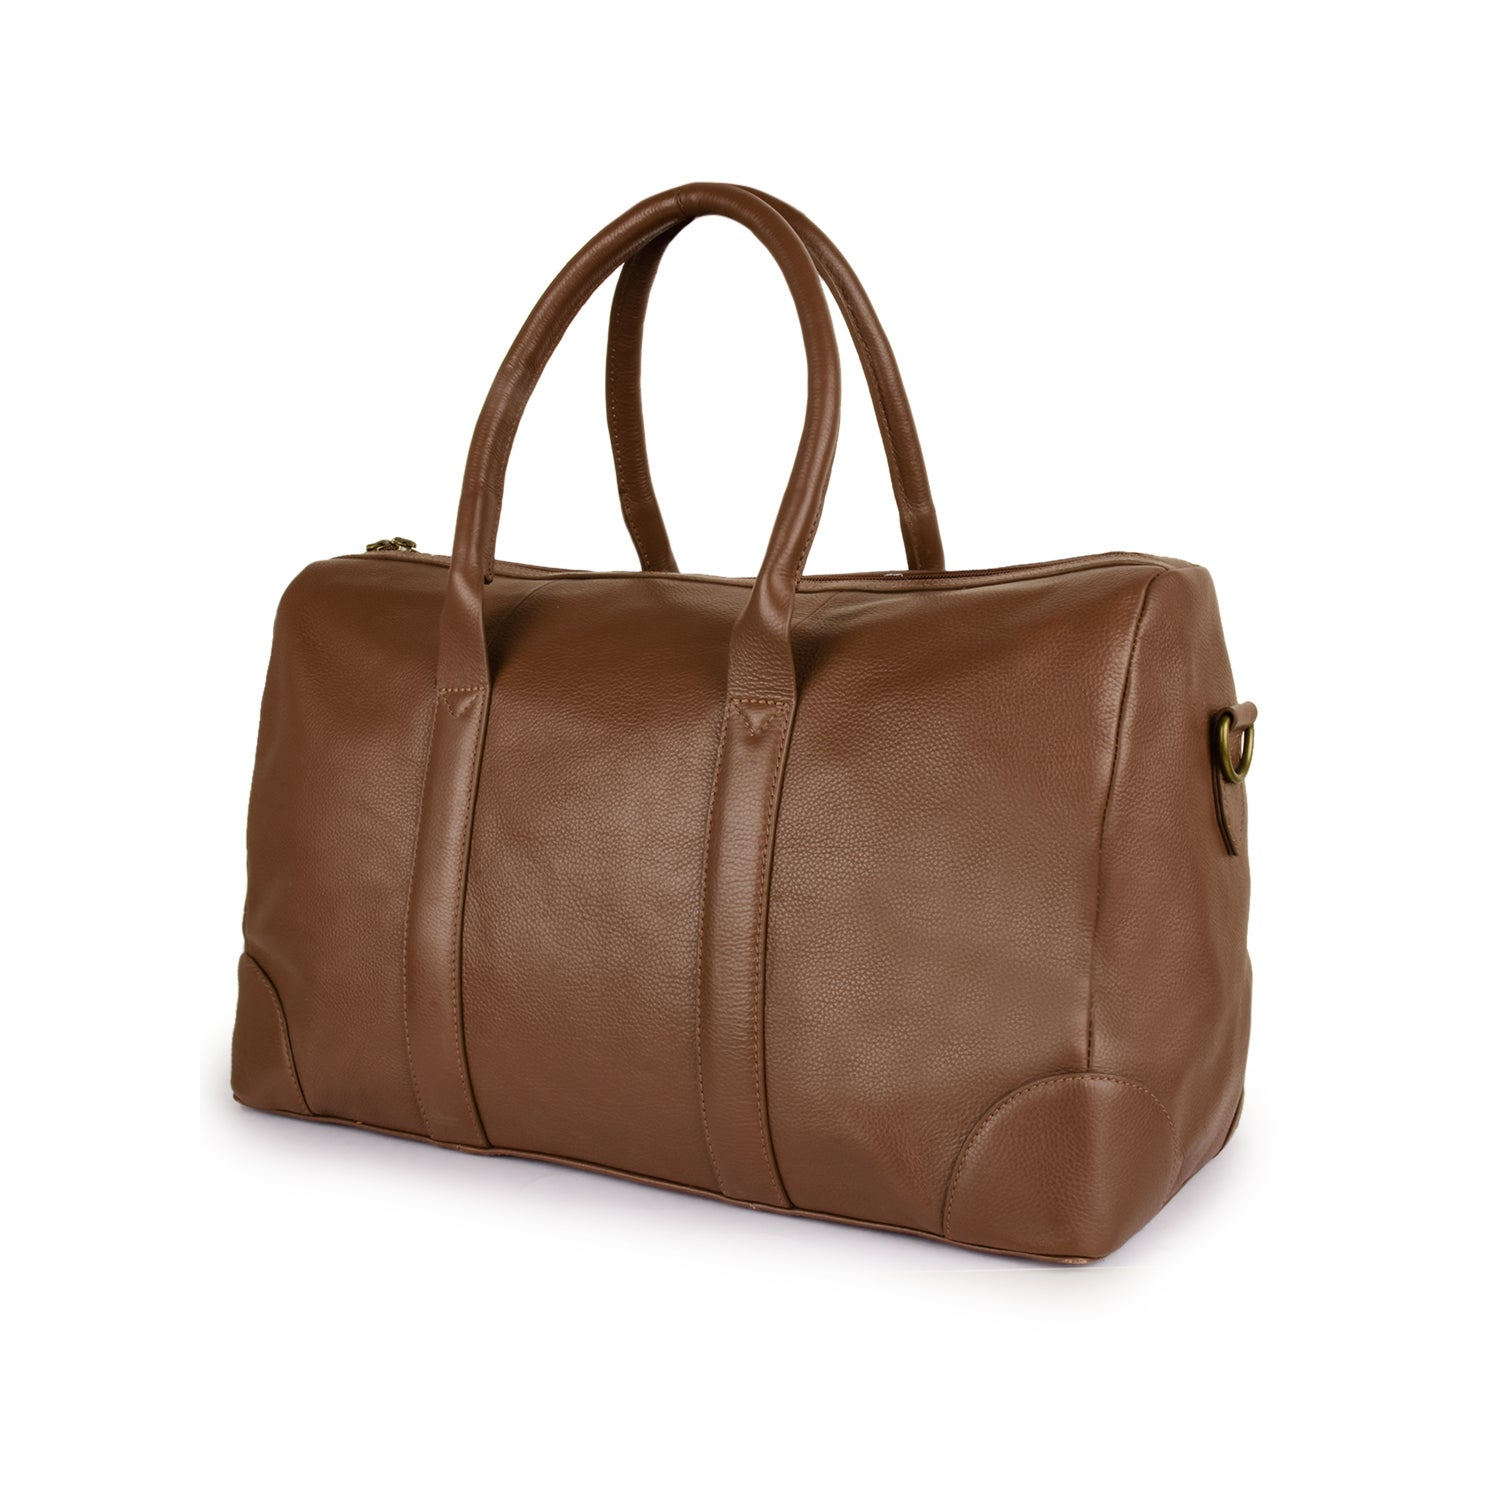 acad2855a Handmade Phive Rivers Men's Leather Travel Duffel Bag (Tan) (Italy)